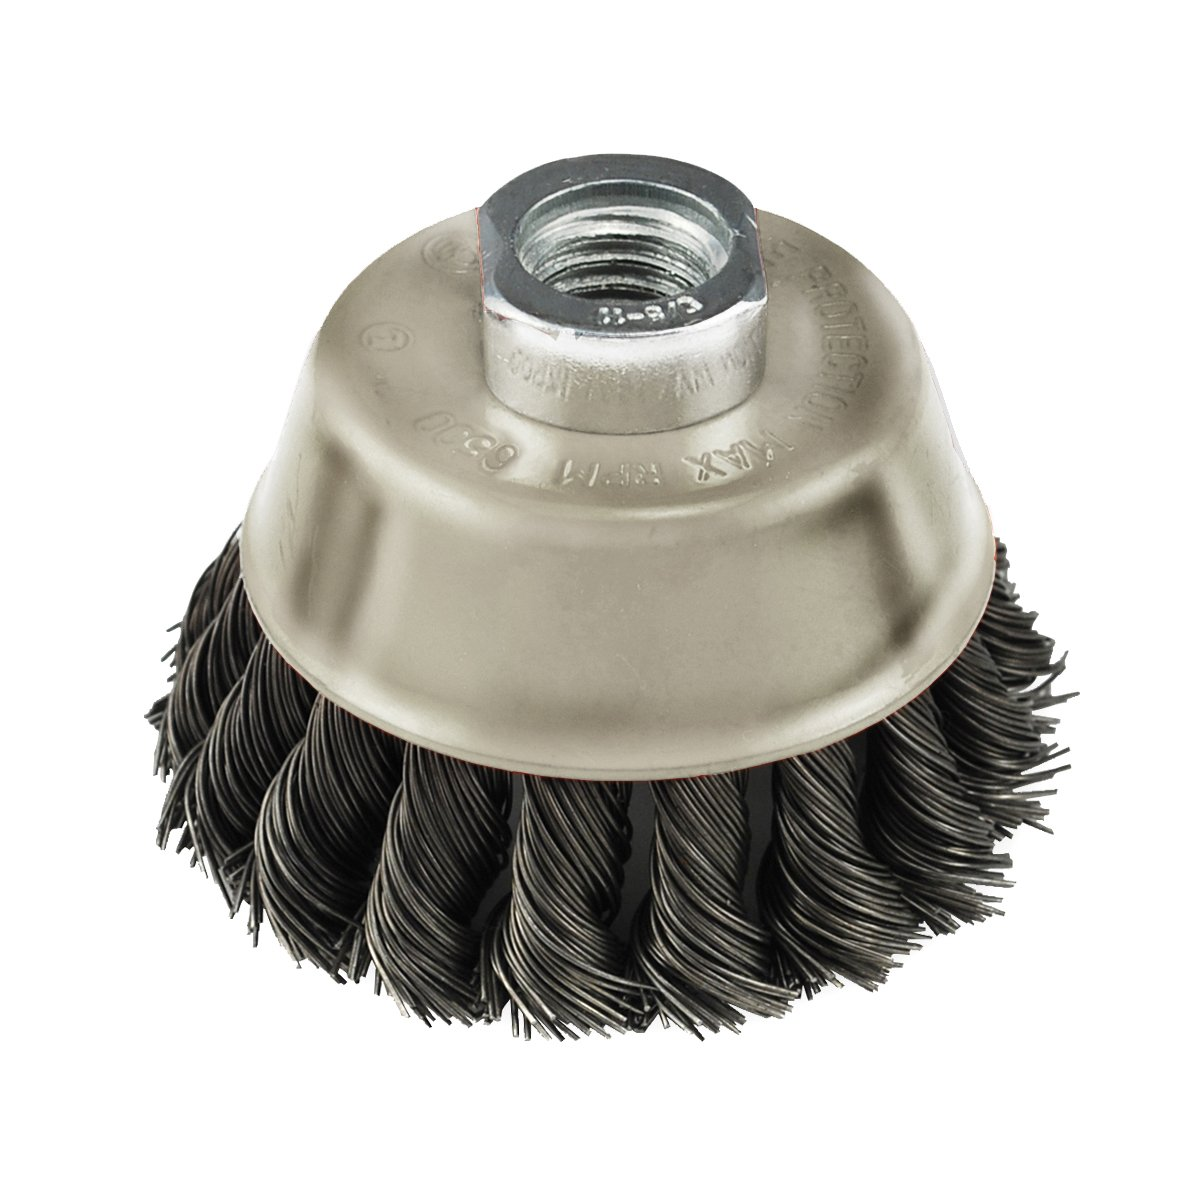 IVY Classic 39046 6-Inch x 5/8-Inch-11 Arbor, Carbon Steel Knot Wire Cup Brush - 0.020-Inch Coarse, 1/Card Ivy Classic Industries